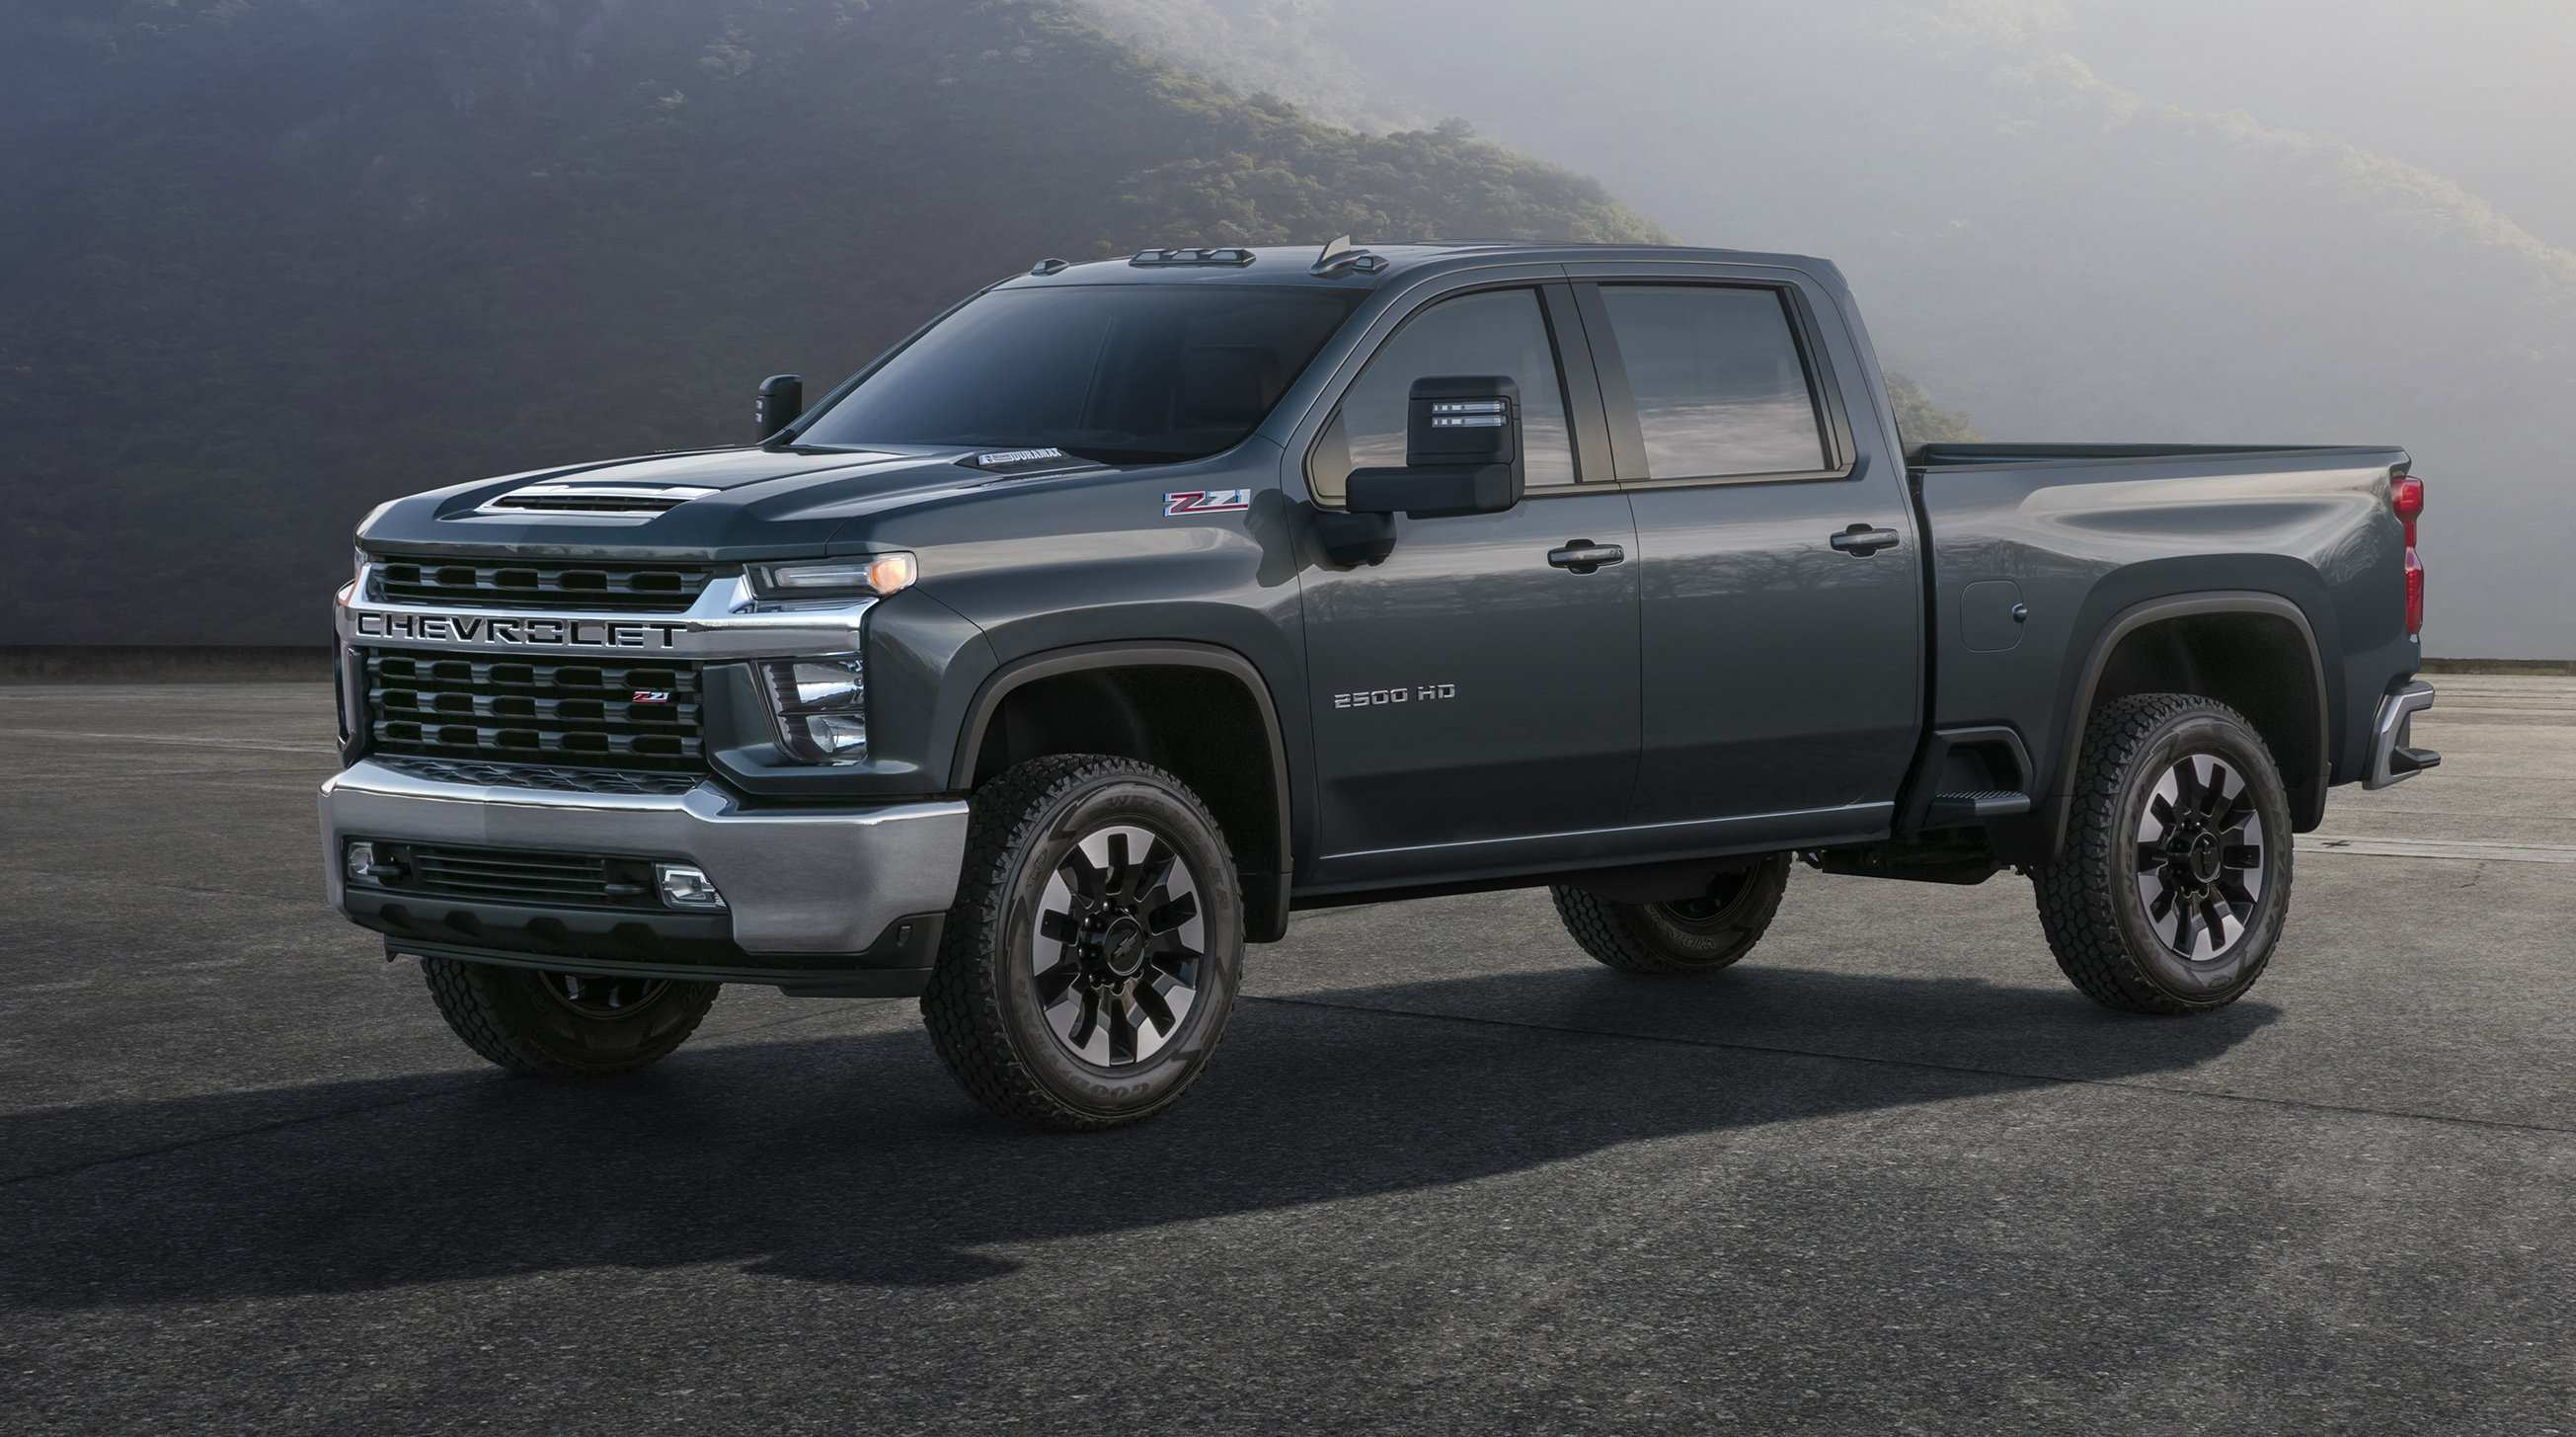 22 Gallery of When Do The 2020 Chevrolet Trucks Come Out Configurations with When Do The 2020 Chevrolet Trucks Come Out